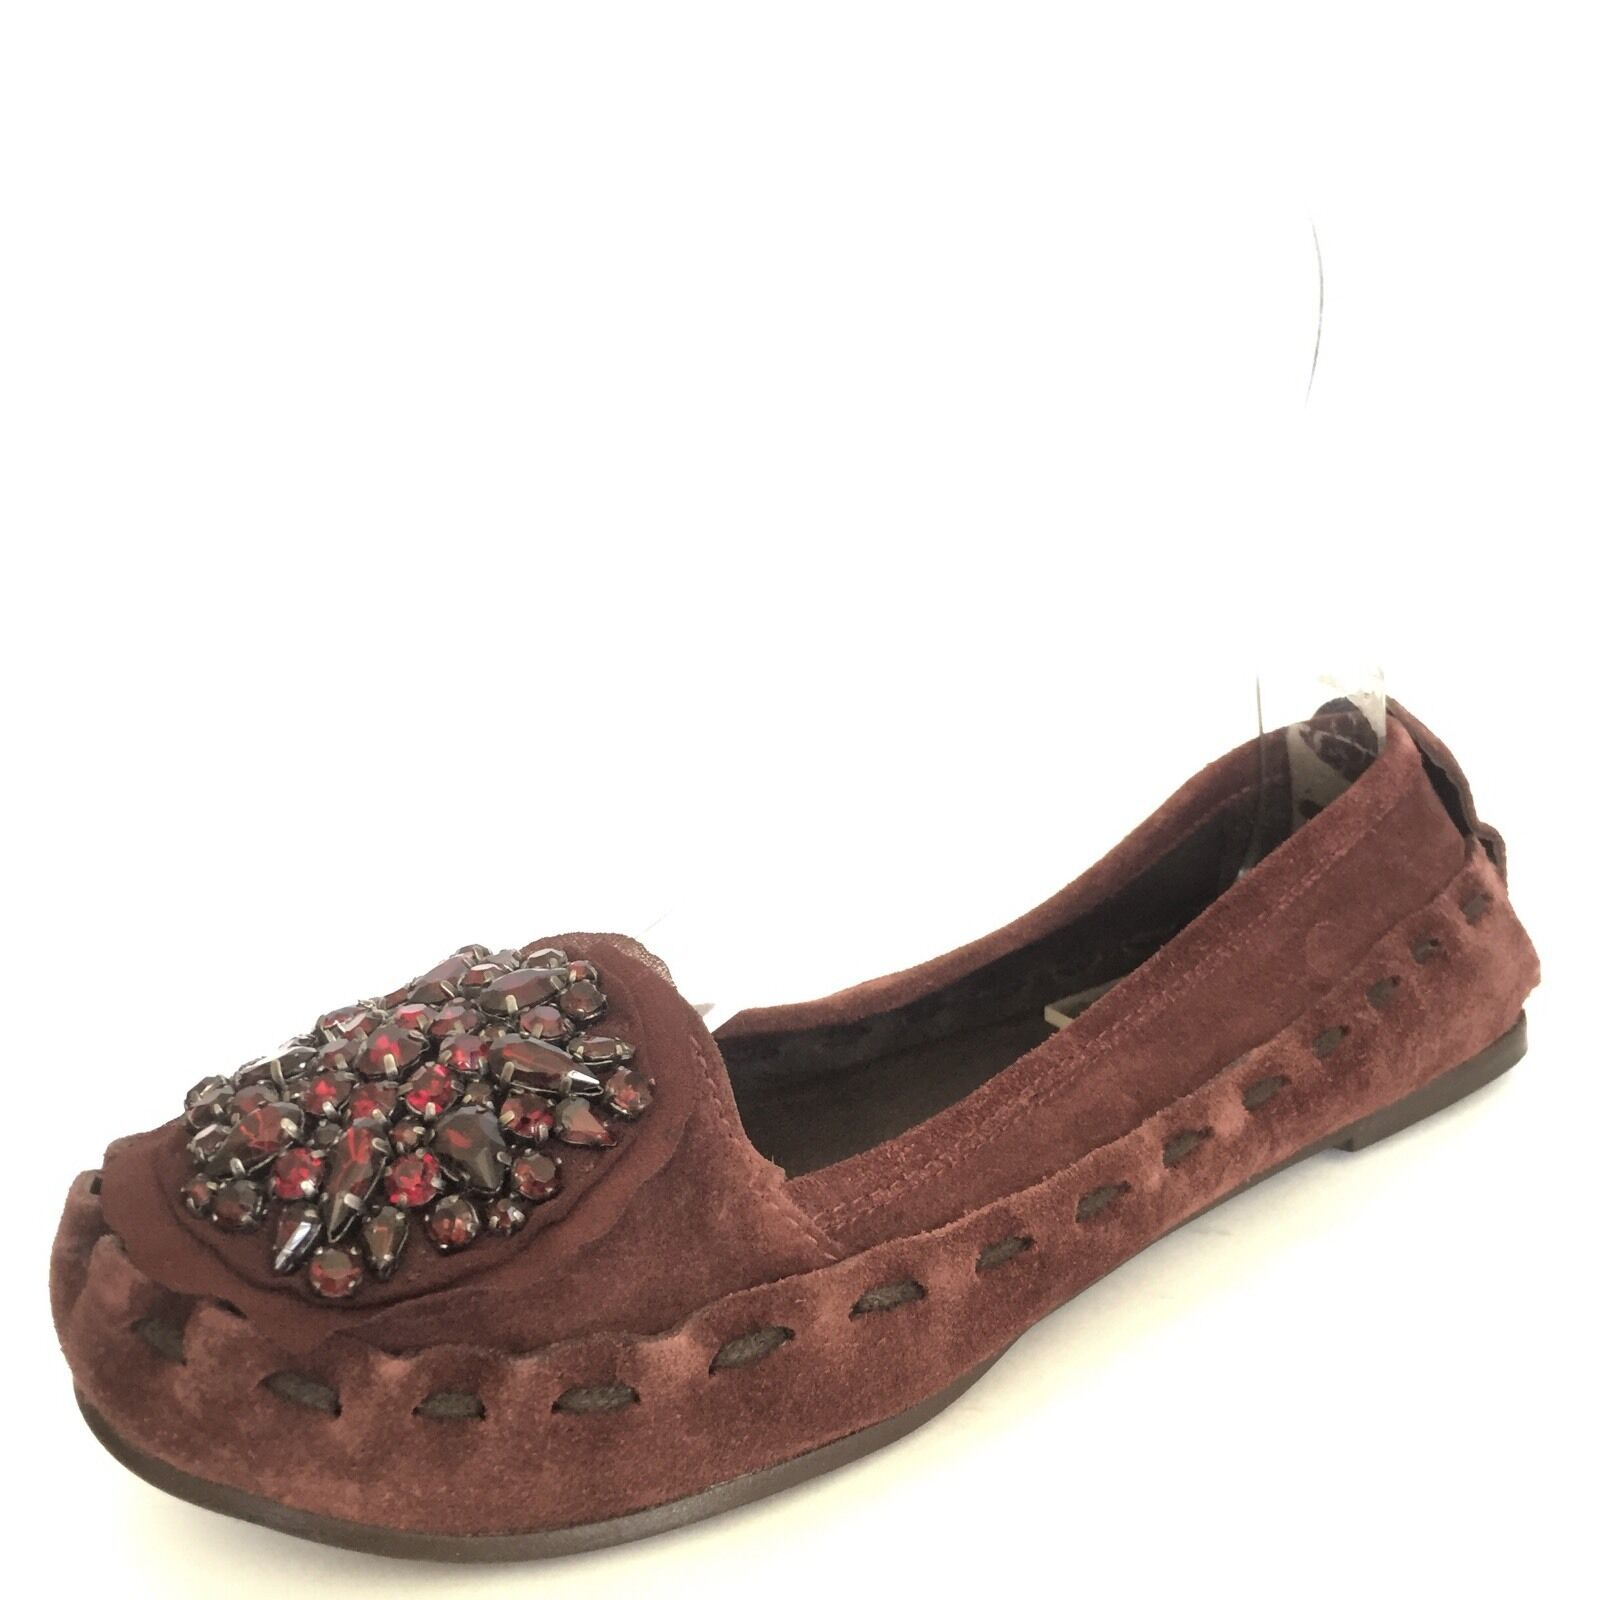 Vera Wang HOPE Women's Jewel Cluster Suede Burgundy Suede Cluster Ballet Flats Shoe Size 6.5 M 5a96f6